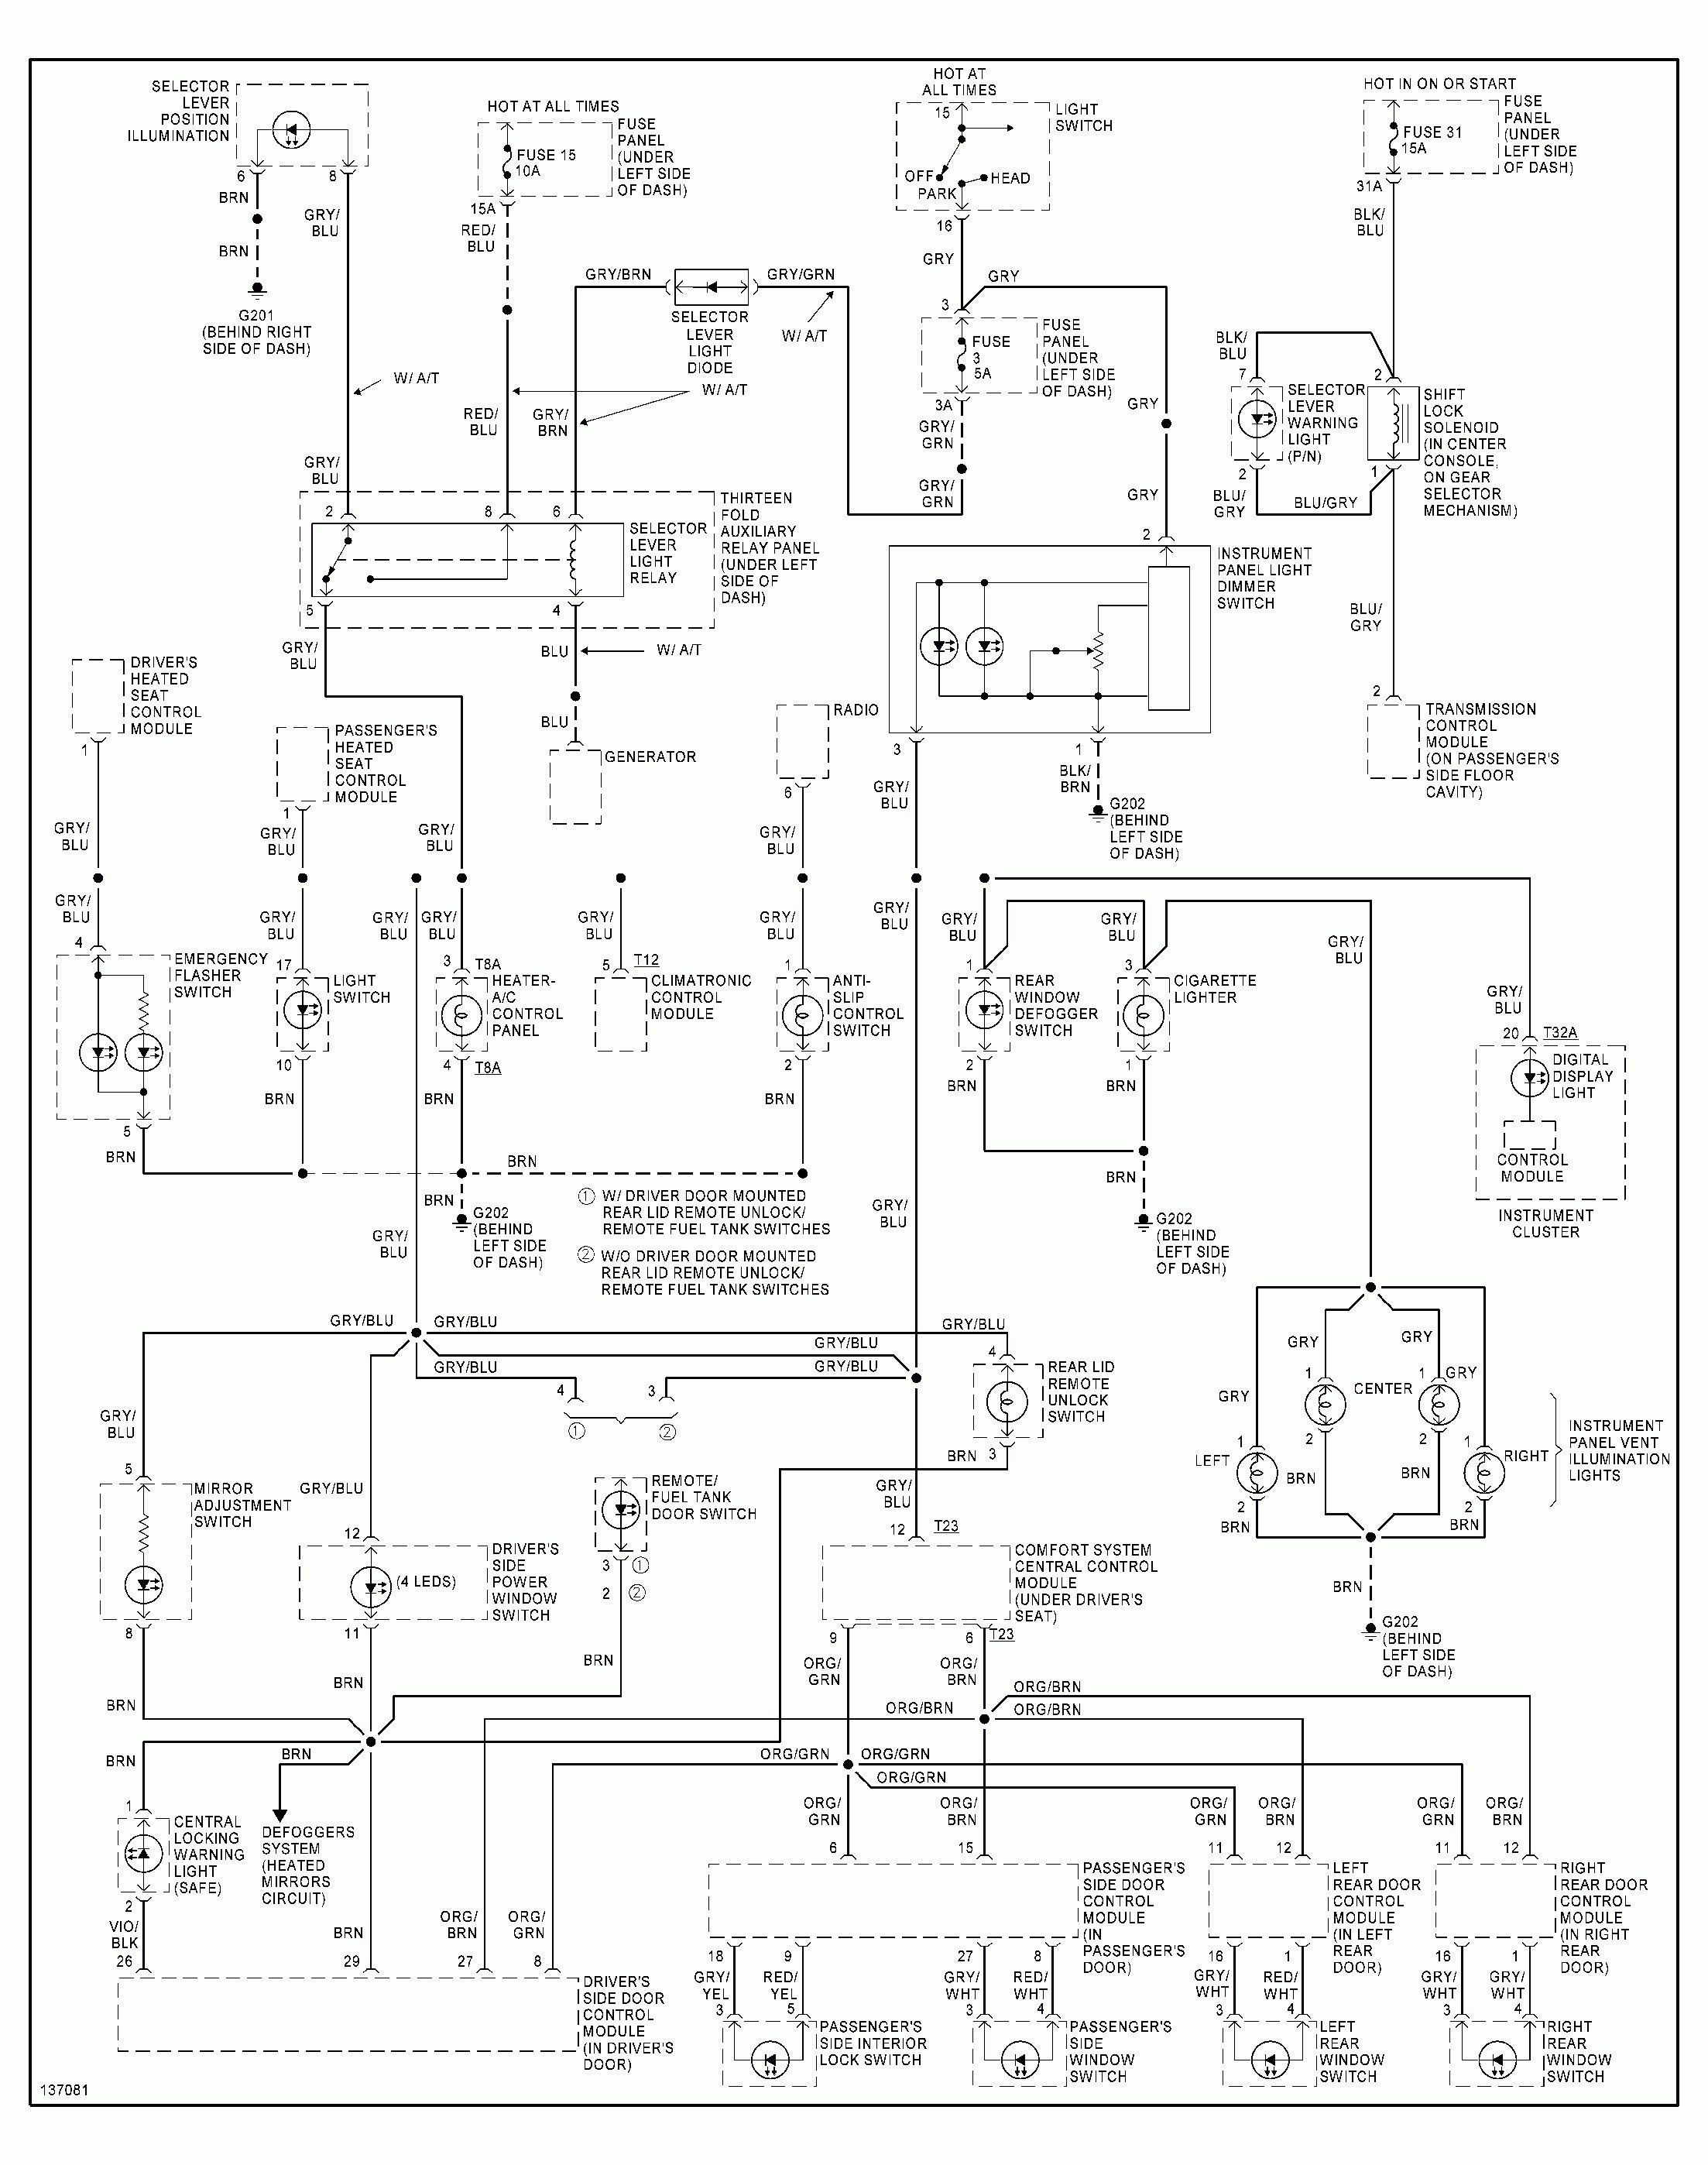 Wiring Diagram For To 35 Ferguson In 2021 Electrical Diagram Jeep Grand Alternator